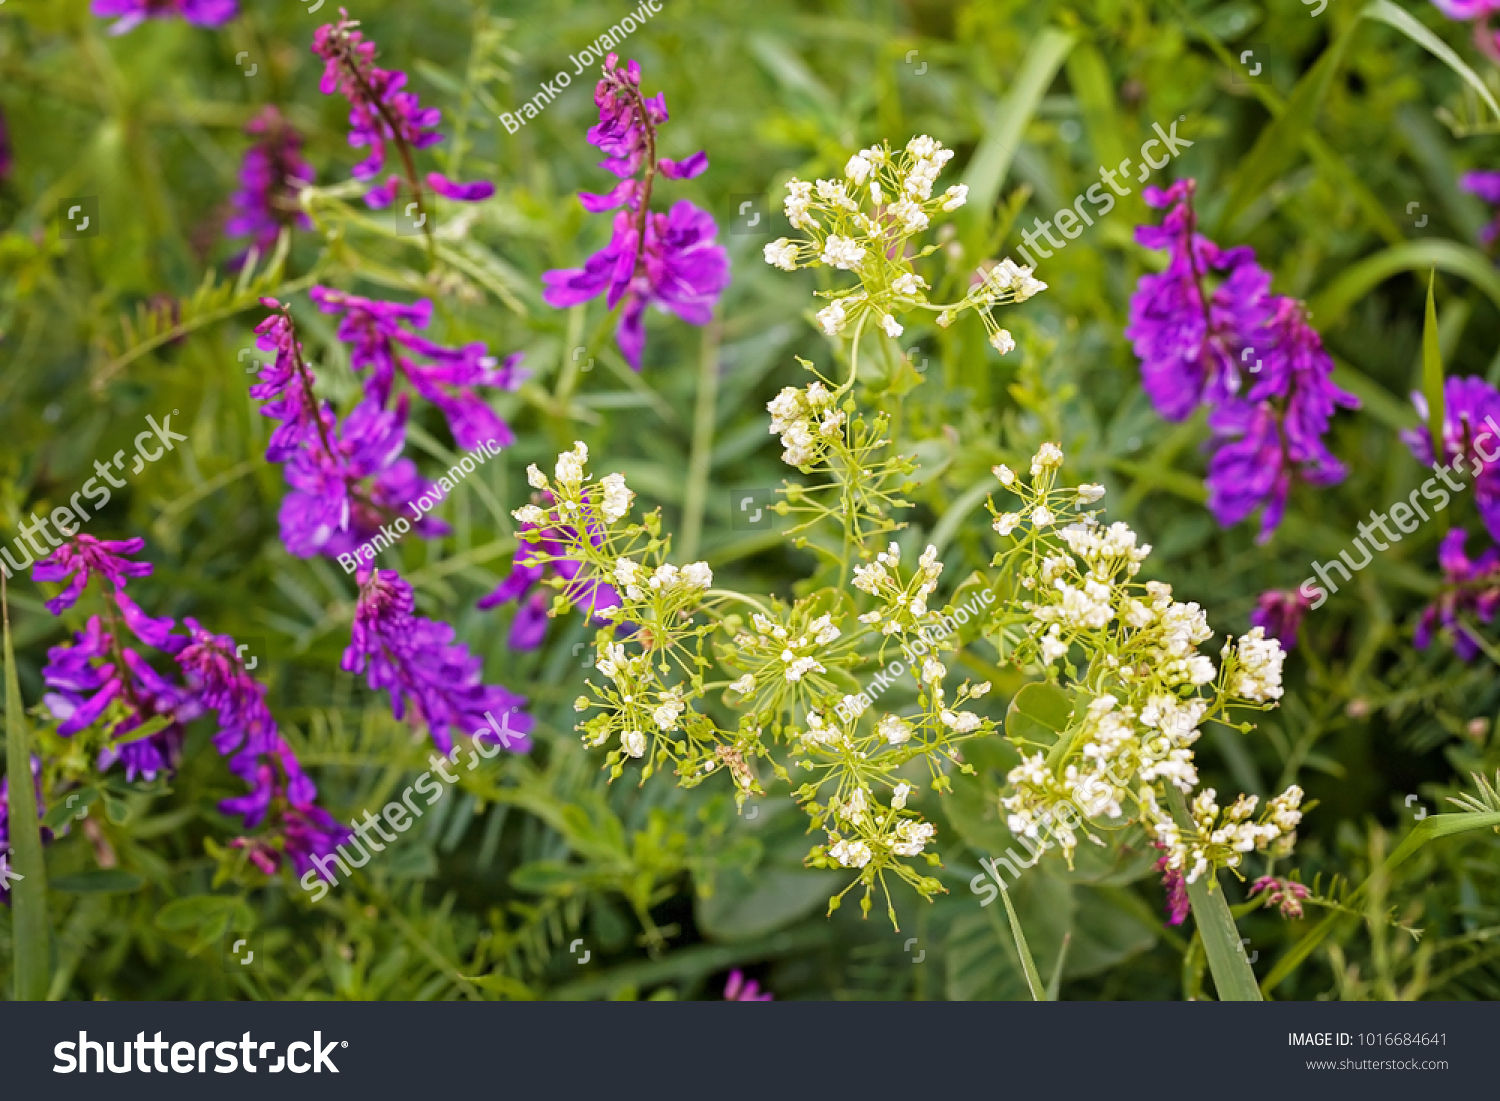 Wild Purple Flowers In Tall Green Grass Note Shallow Depth Of Field